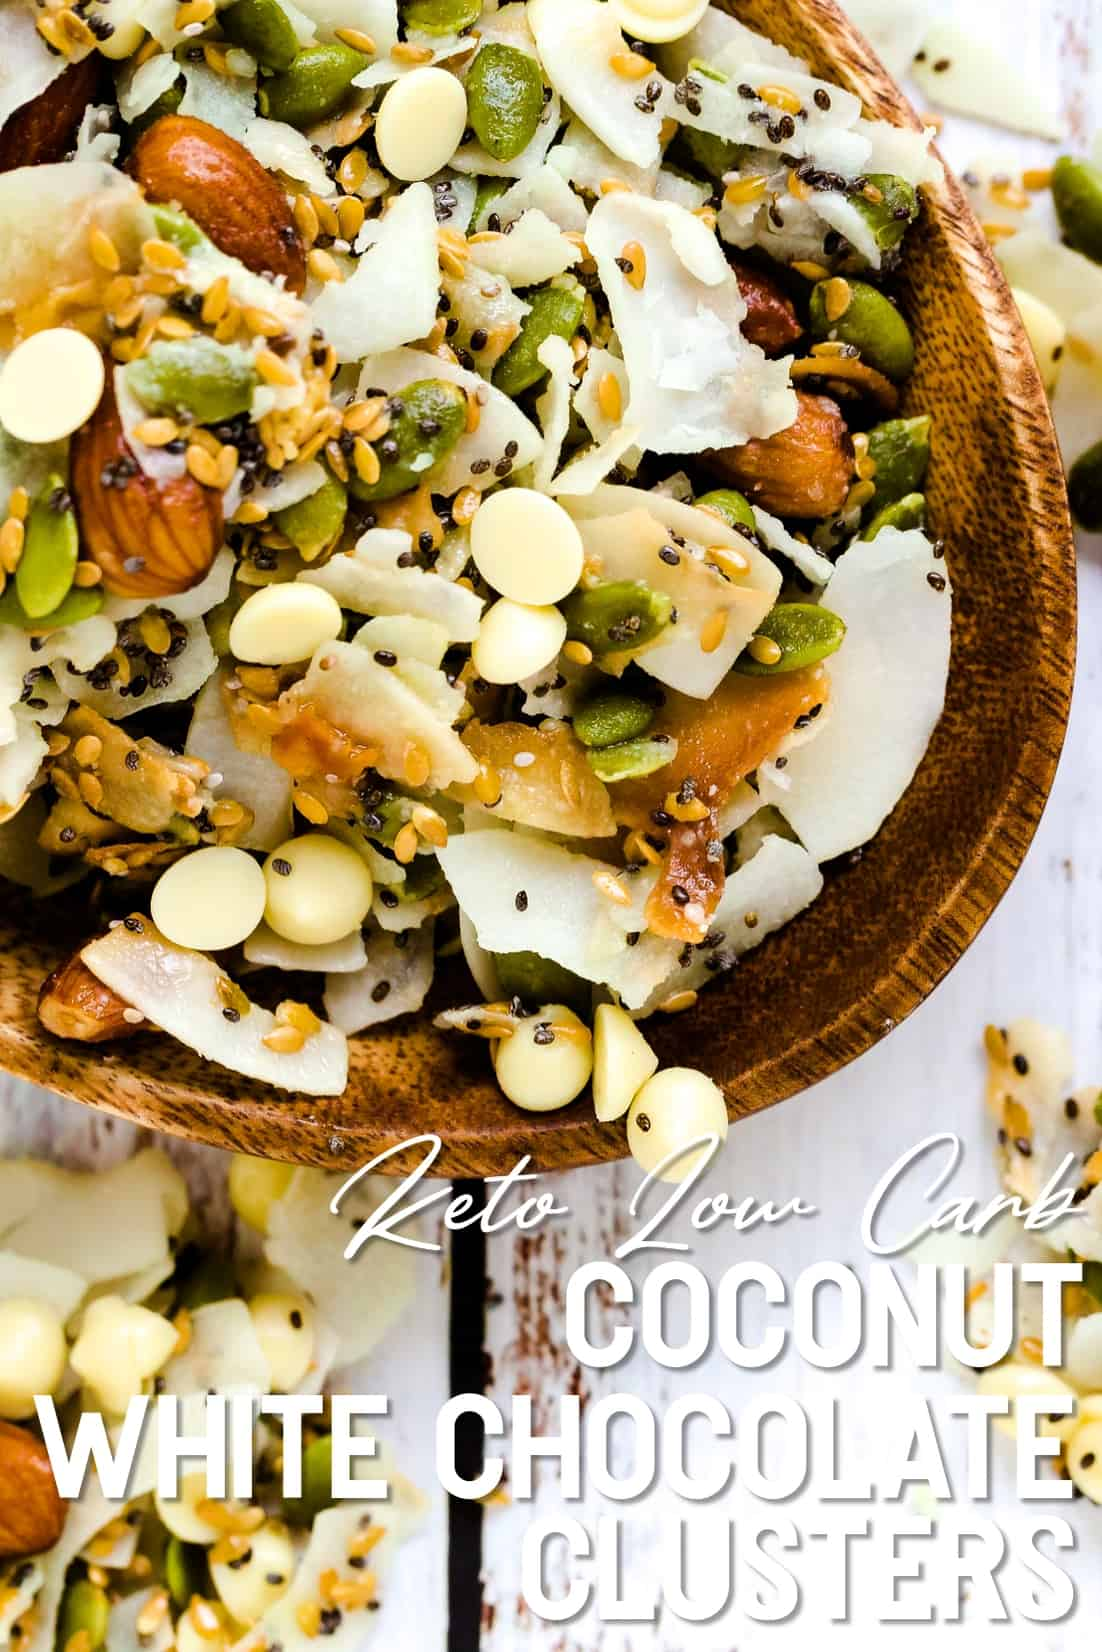 Keto Low Carb Coconut White Chocolate Clusters